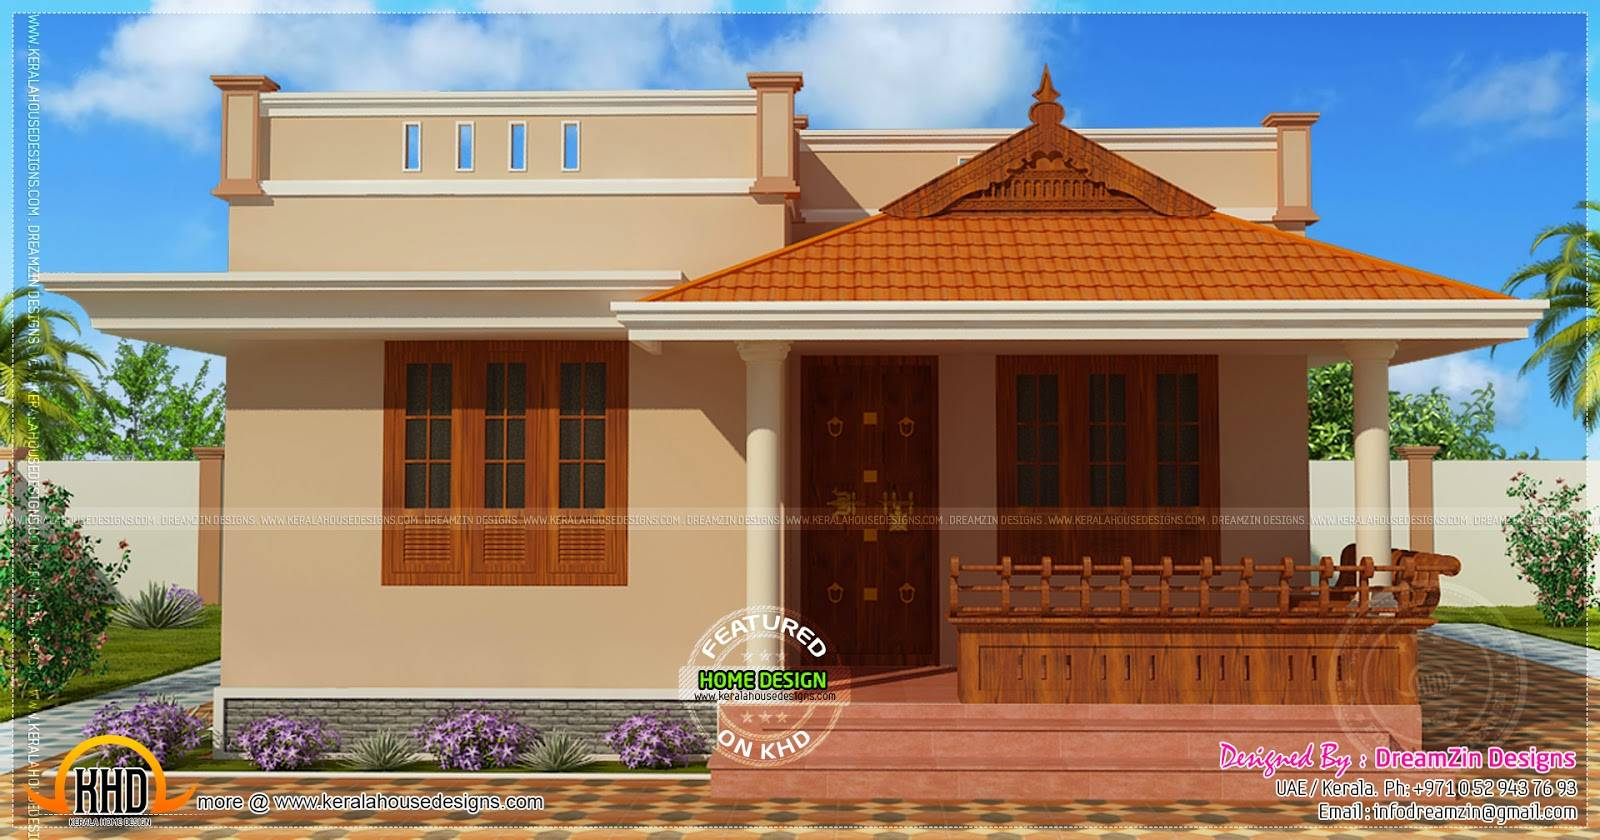 Awe Inspiring Alfa Img Showing Small Kerala House Model House Plans 53315 Largest Home Design Picture Inspirations Pitcheantrous